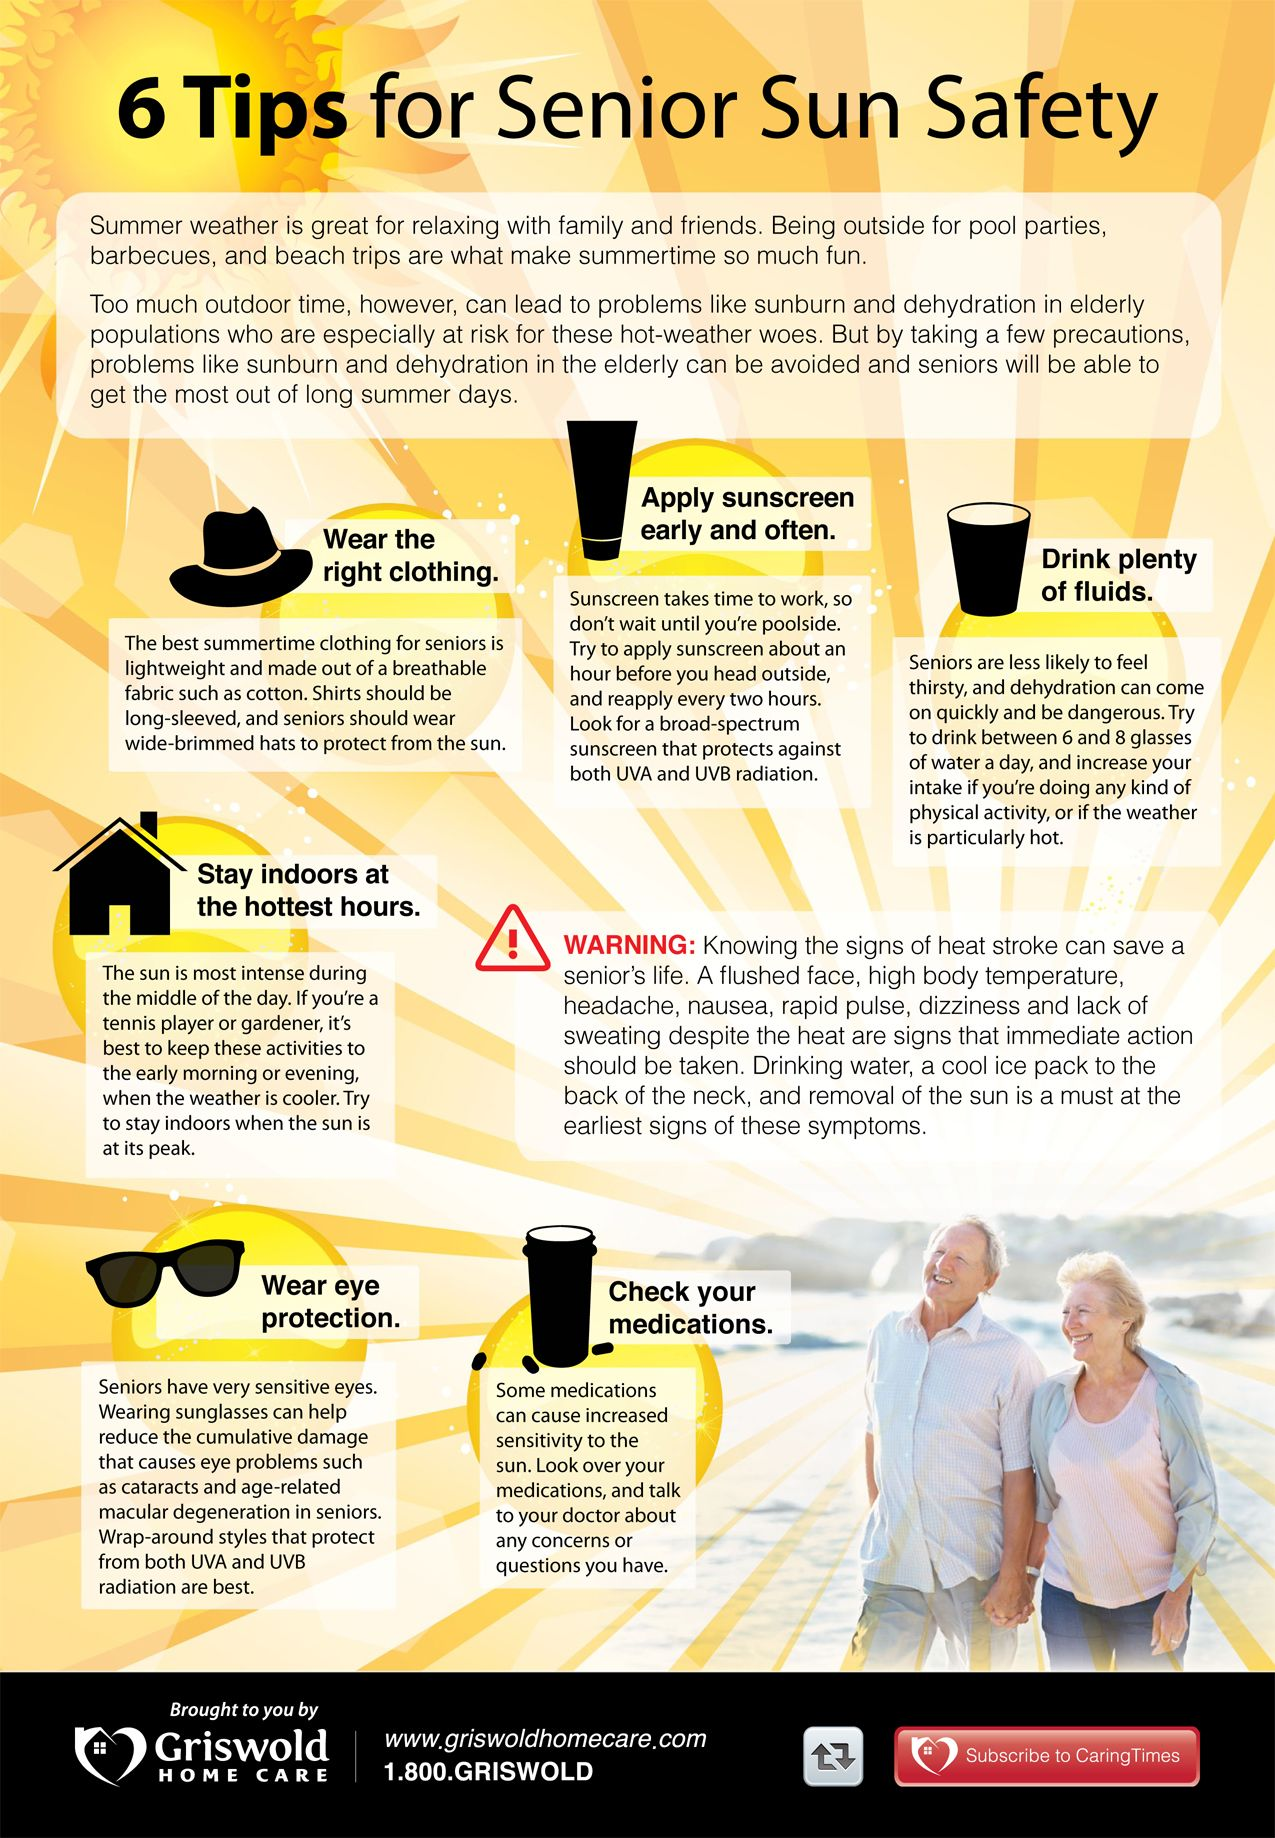 6 tips for senior sun safety #sunsafety #infographic